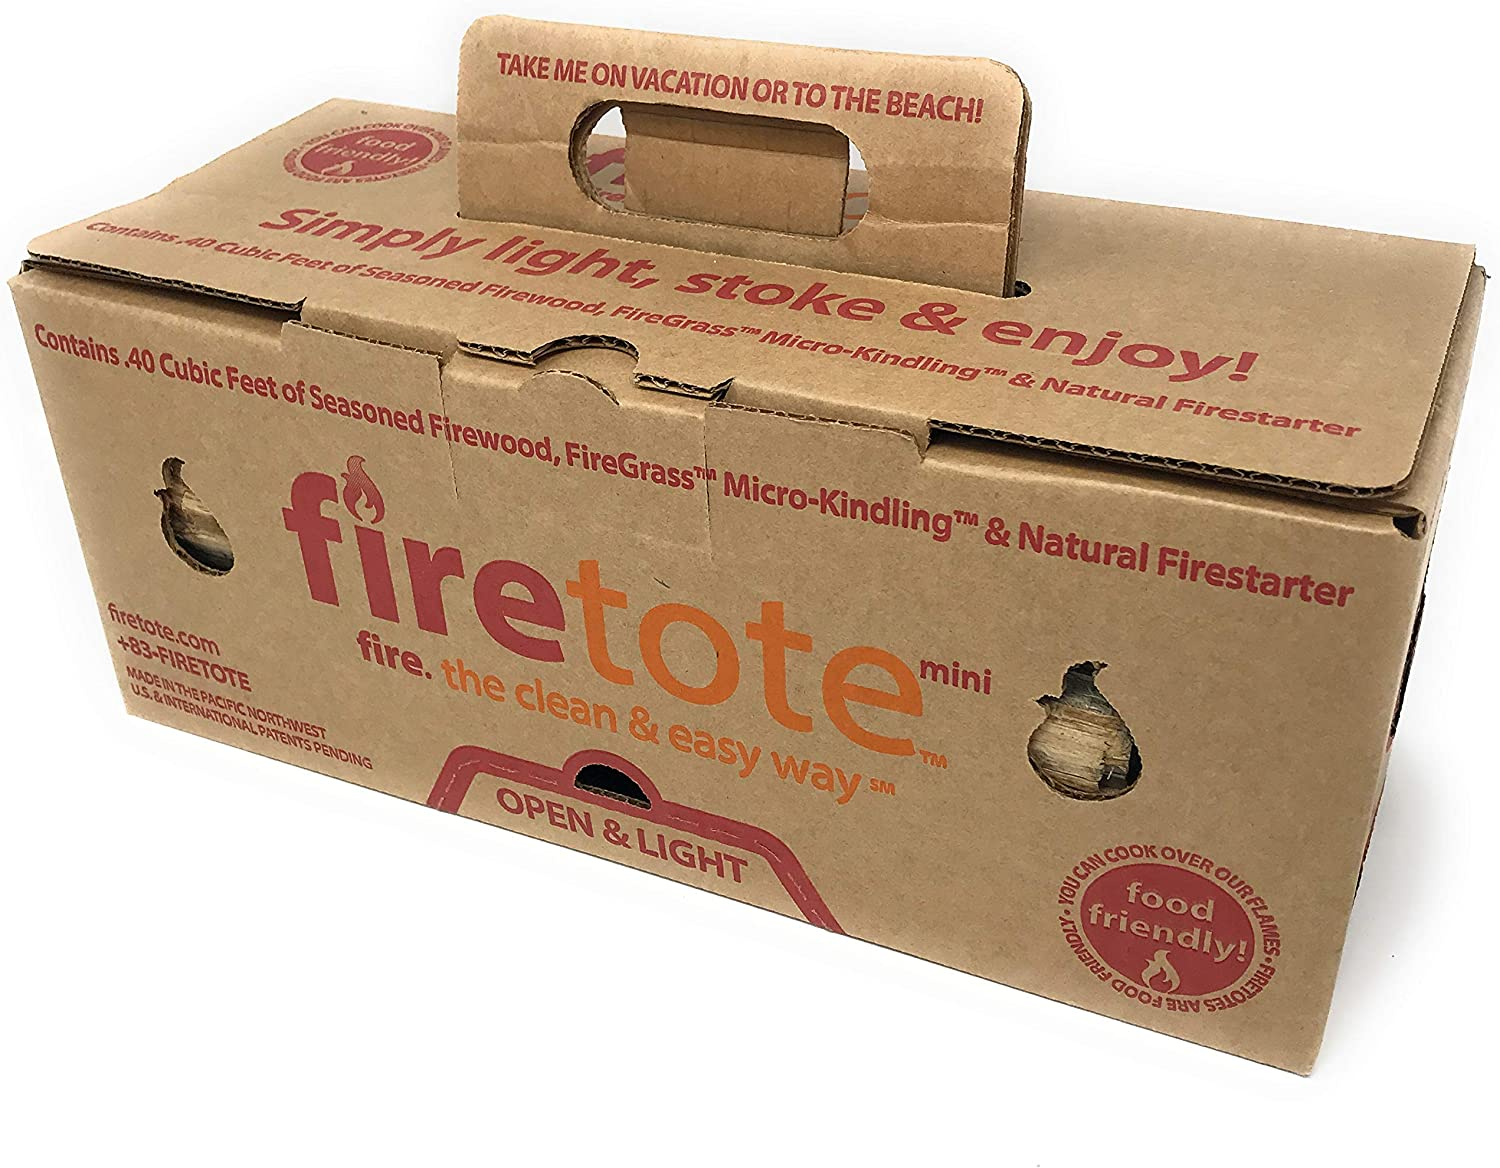 Firetote Box Kiln Dried Wood Logs Firewood /& Kindling Safe /& Natural Fire Starter for Open Fire BBQ or Campfire Logs